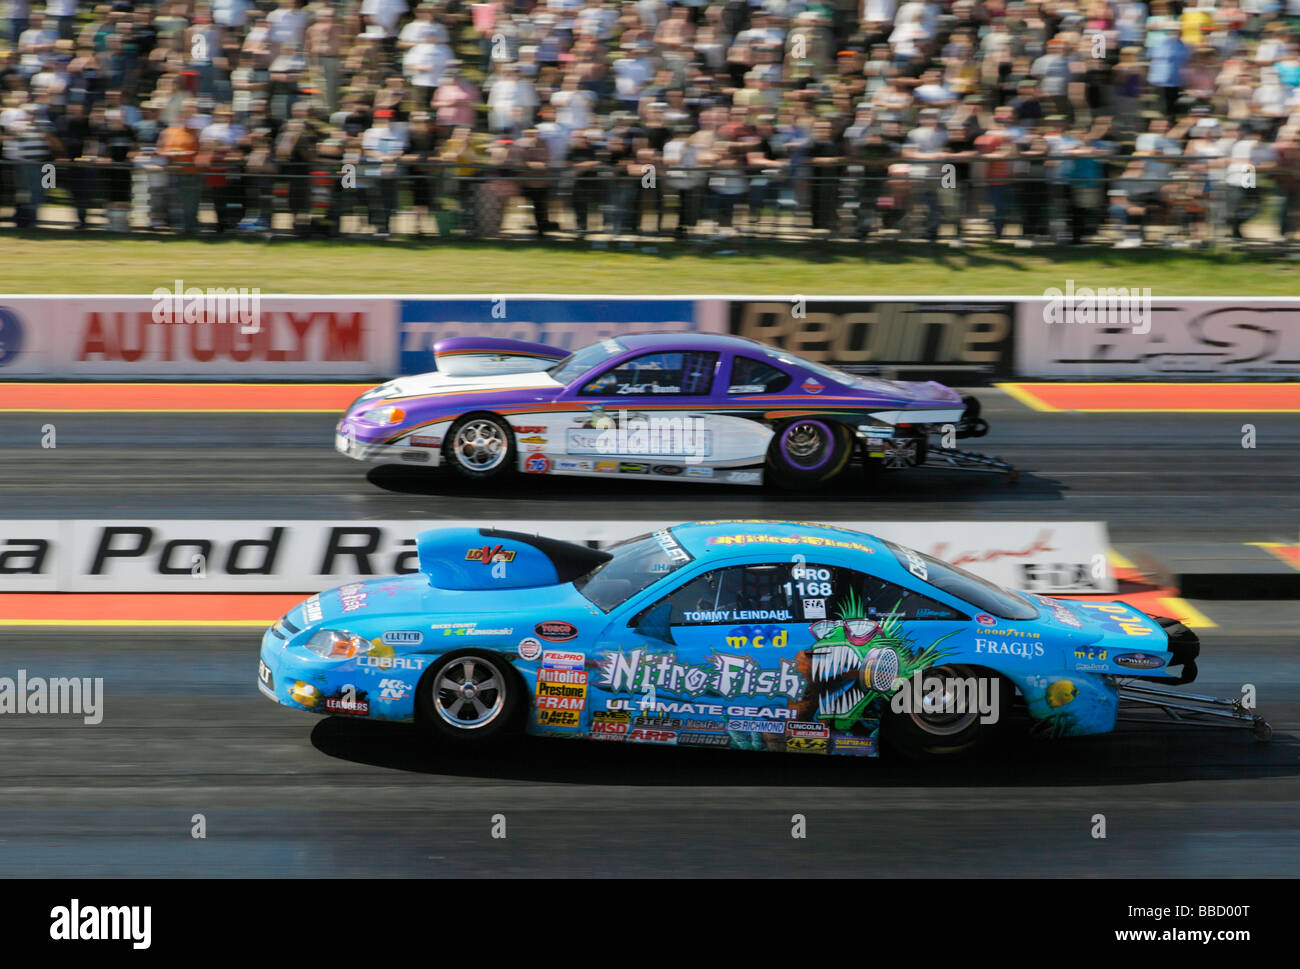 Pro stock drag race santa pod raceway england uk stock image